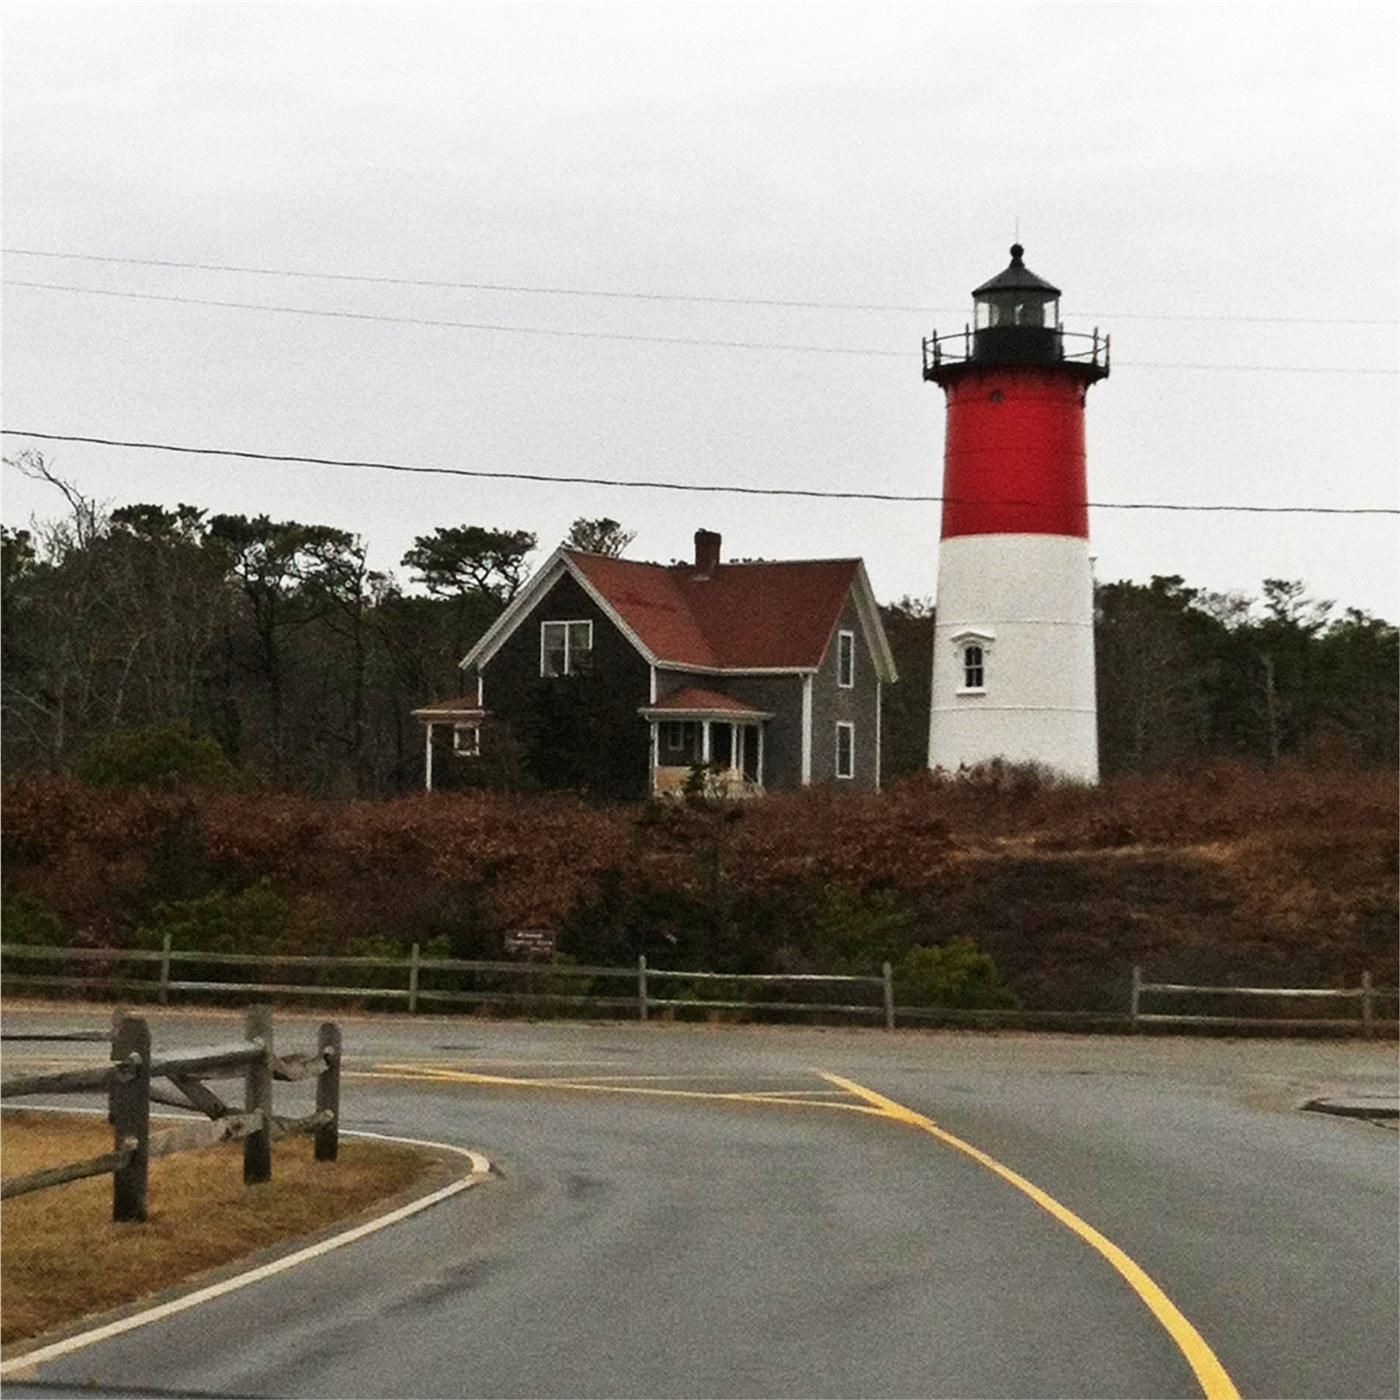 Eastham Vacation Rental Home In Cape Cod MA 02651, 8/10